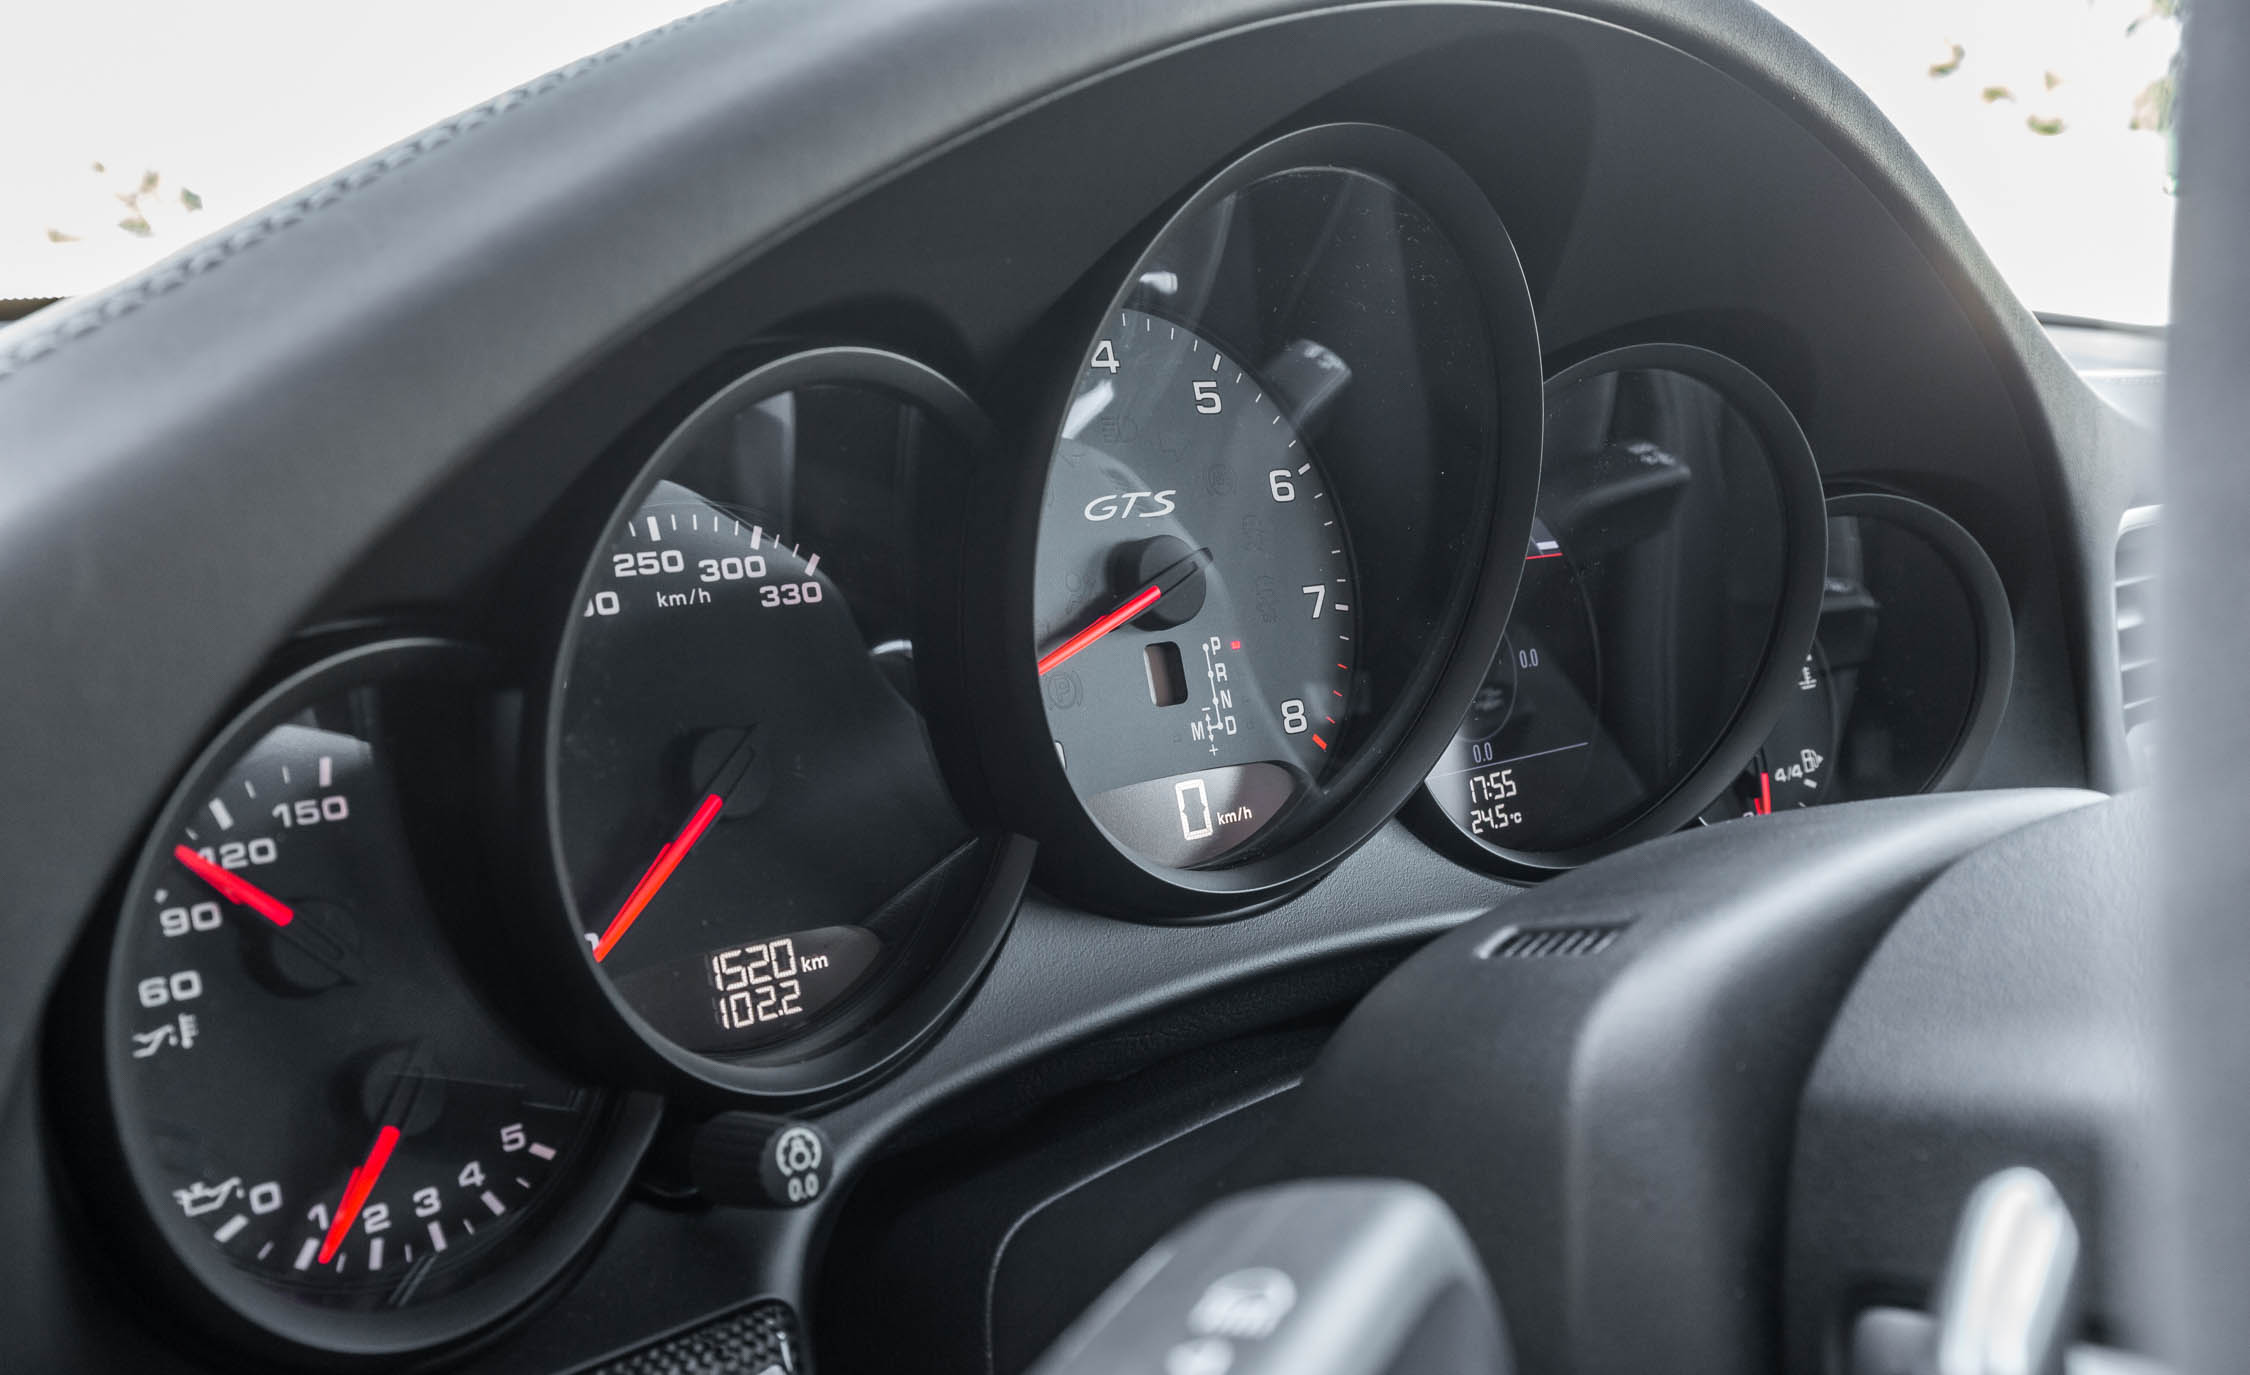 2017 Porsche 911 Carrera GTS Coupe Interior View Speedometer (Photo 53 of 97)